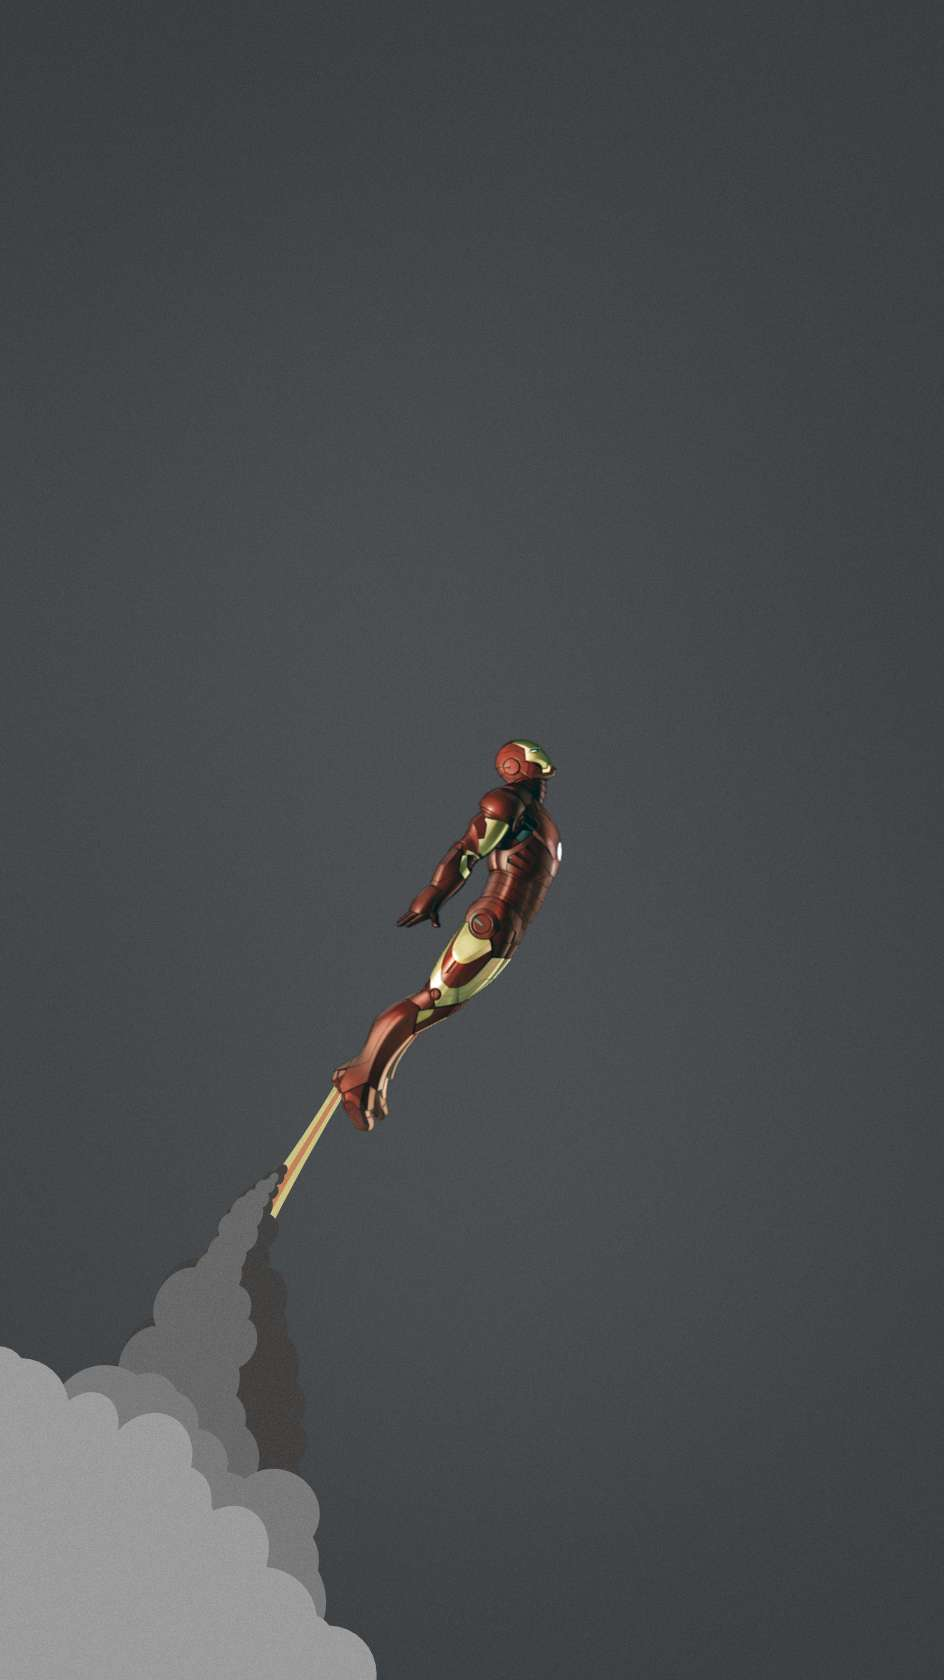 Iron Man Simple Background iPhone Wallpaper